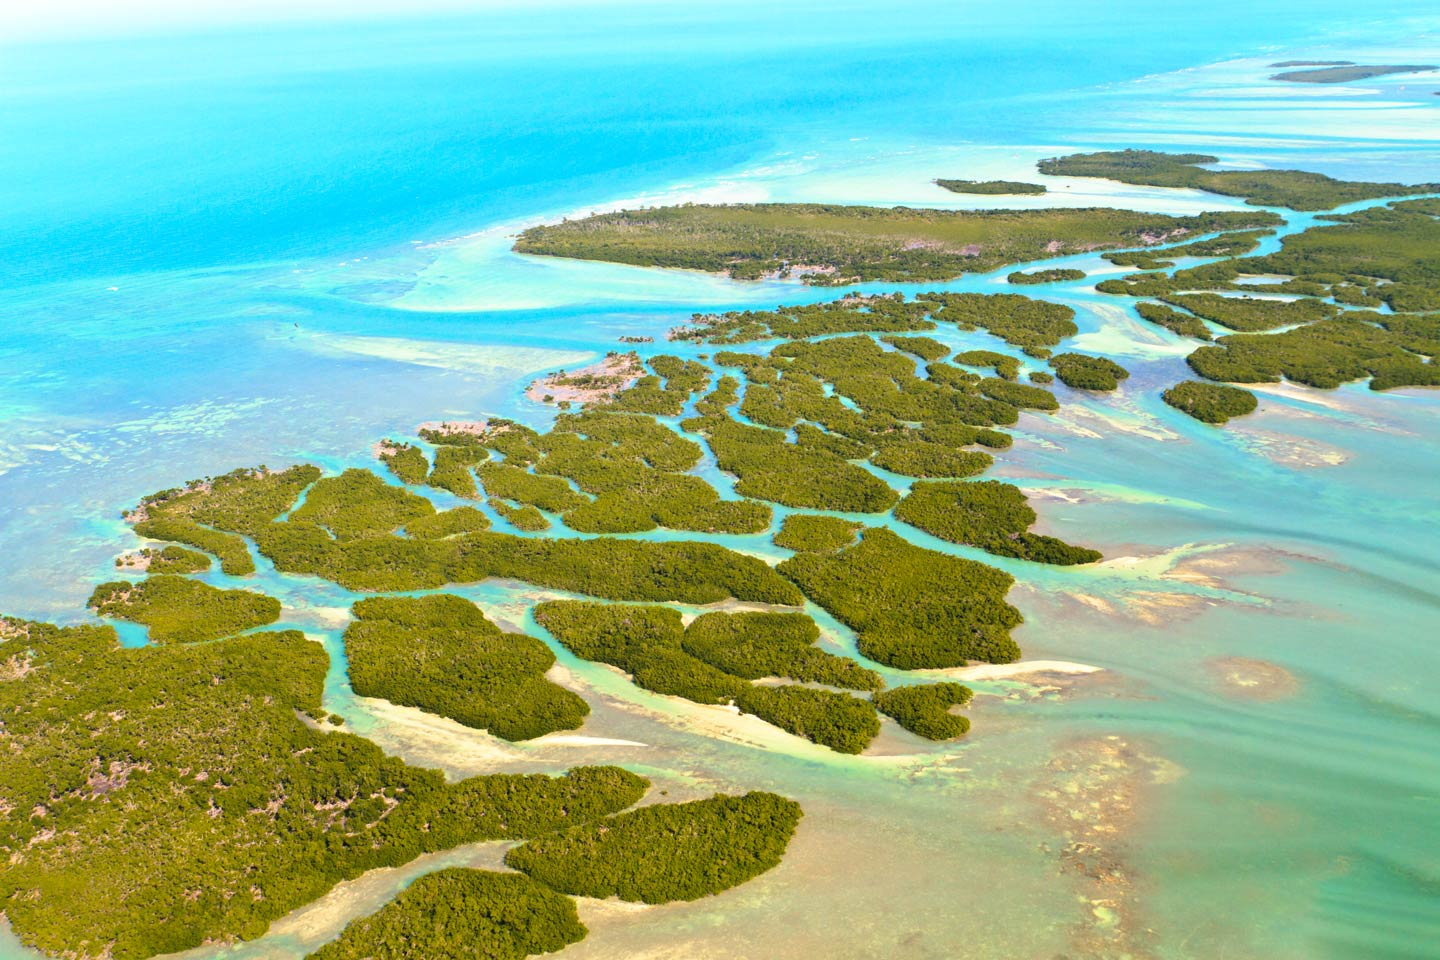 An aerial view of the Florida Keys